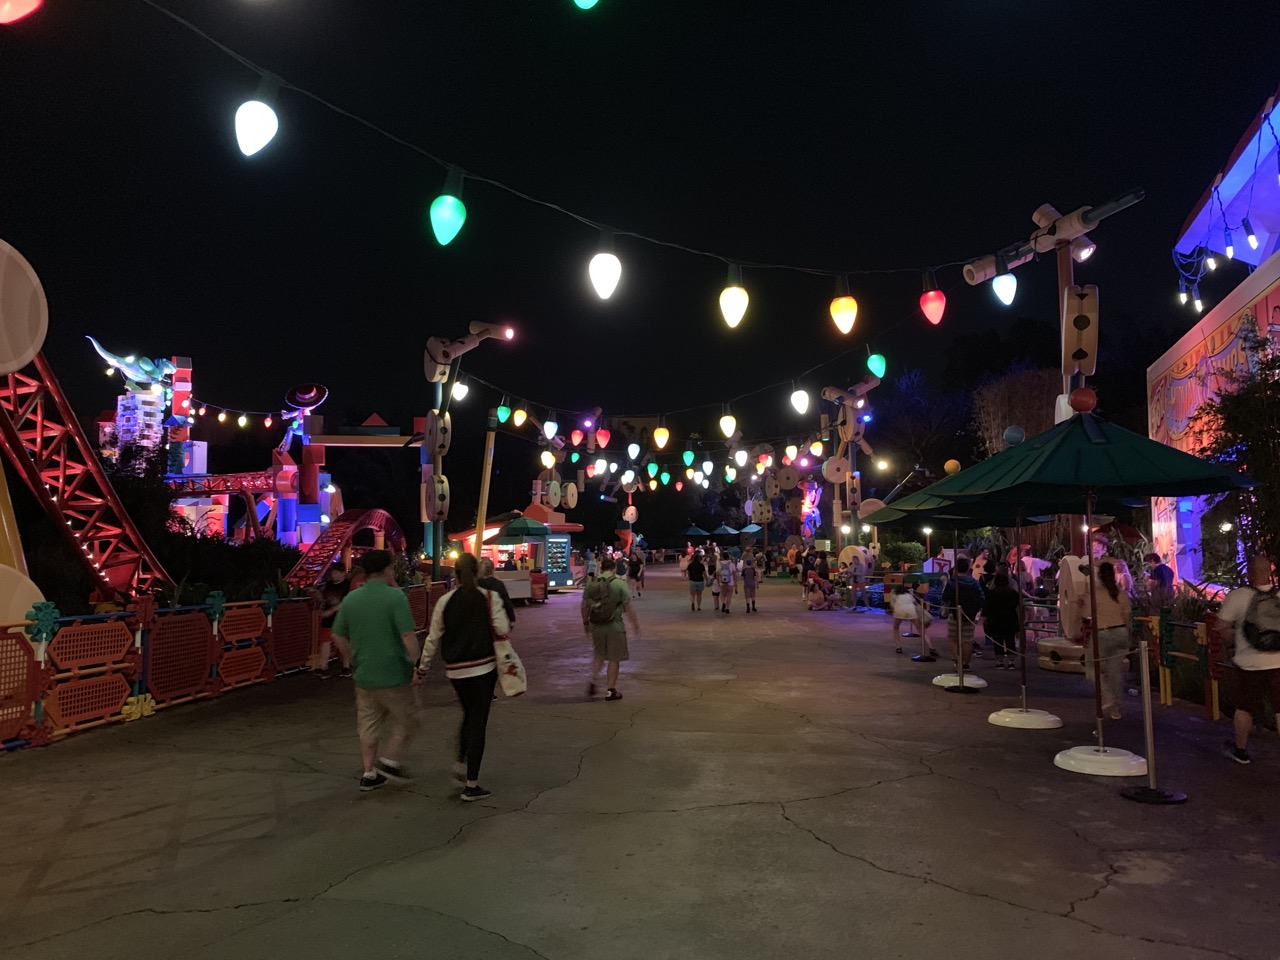 disney world hollywood studios after hours review 33 toy story land.jpeg